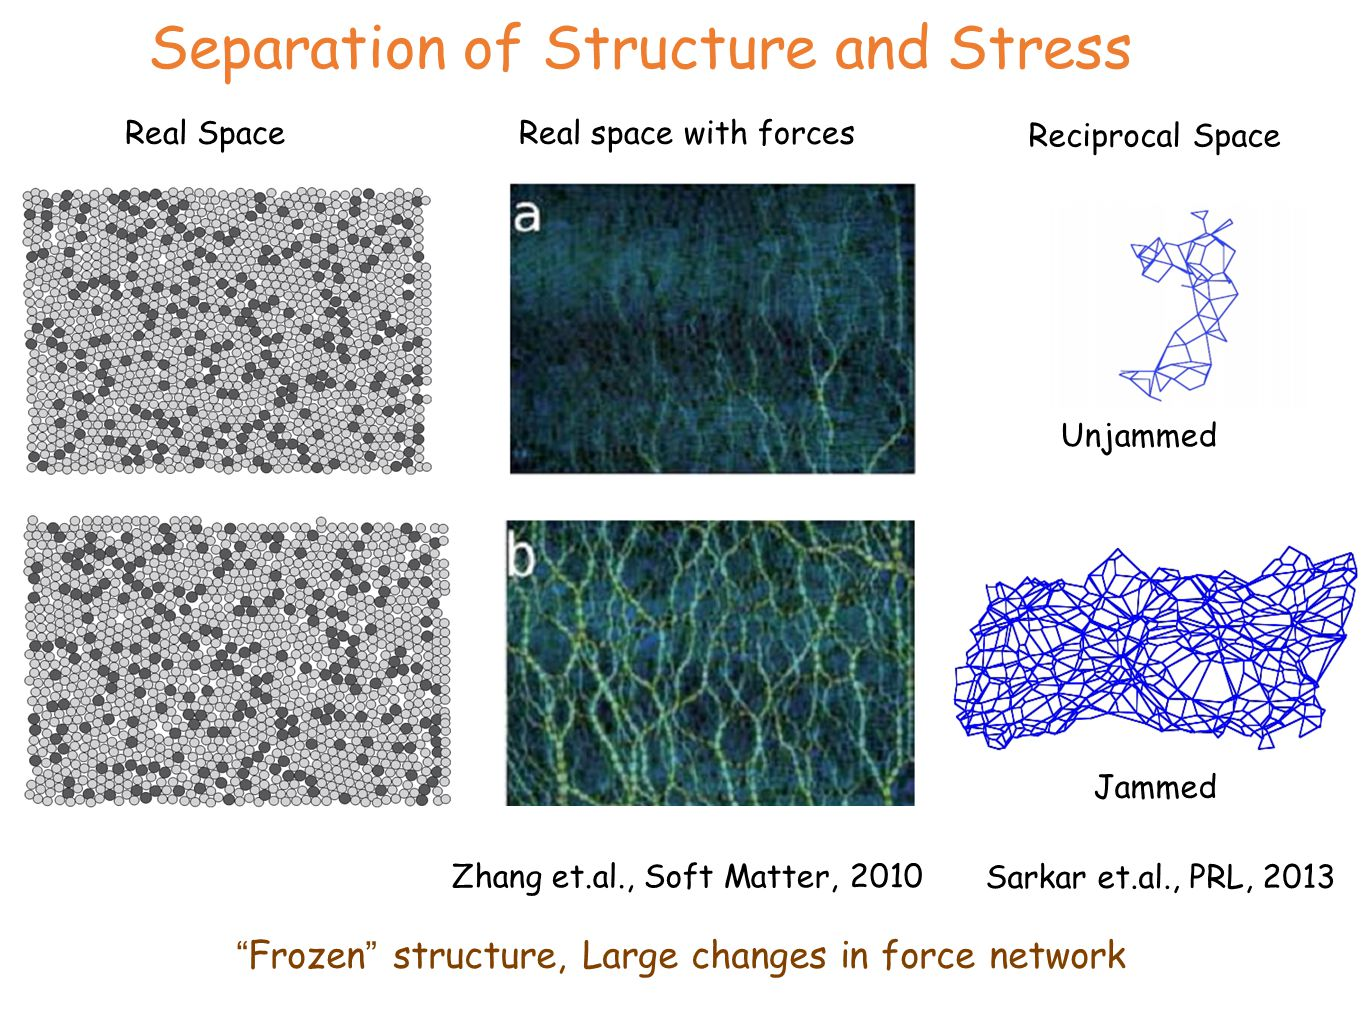 Separation of Structure and Stress